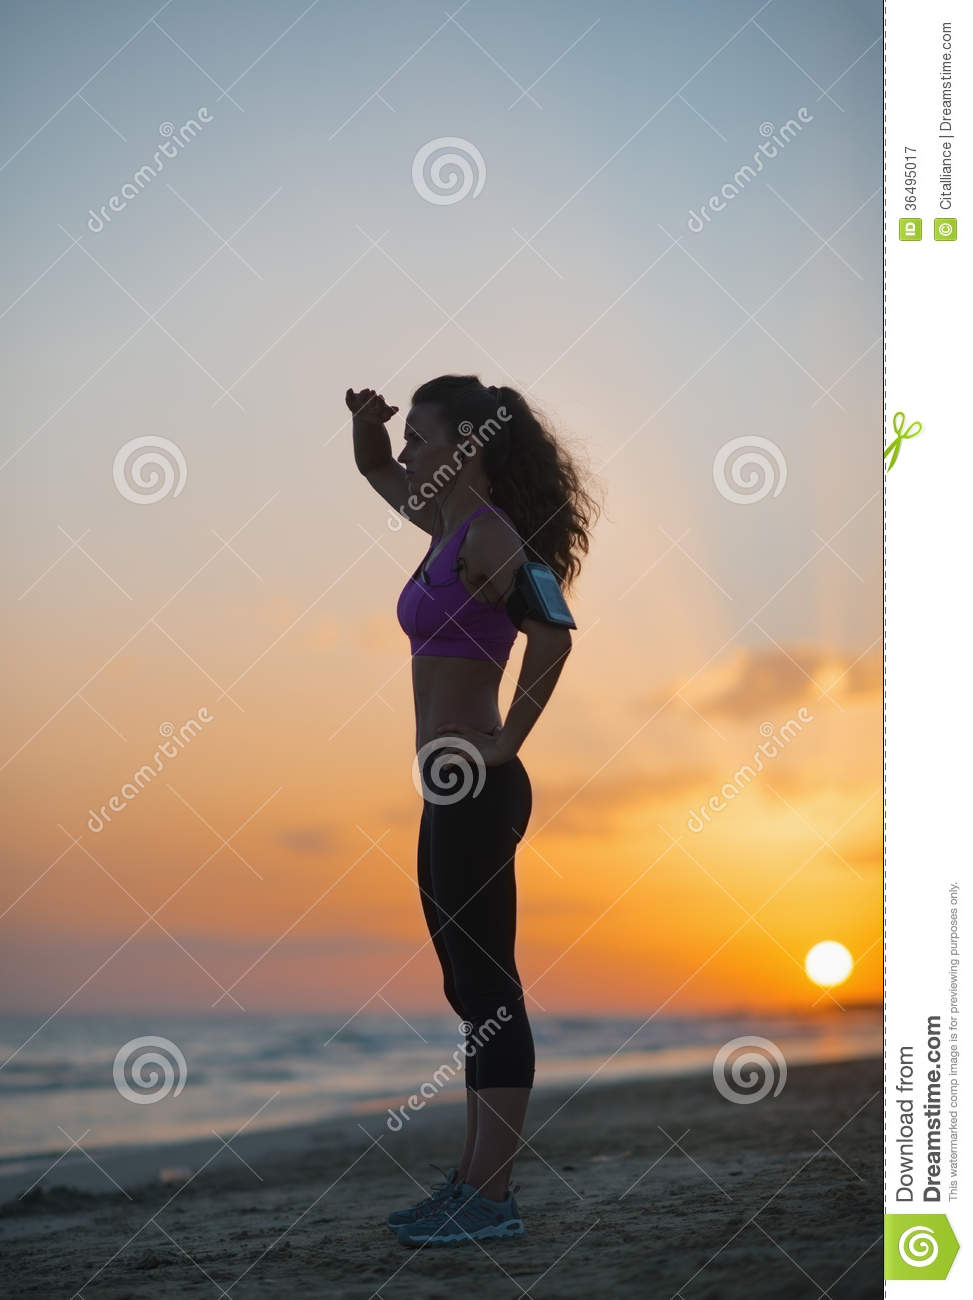 Silhouette Of Fitness Woman Looking Into Distance On Beach